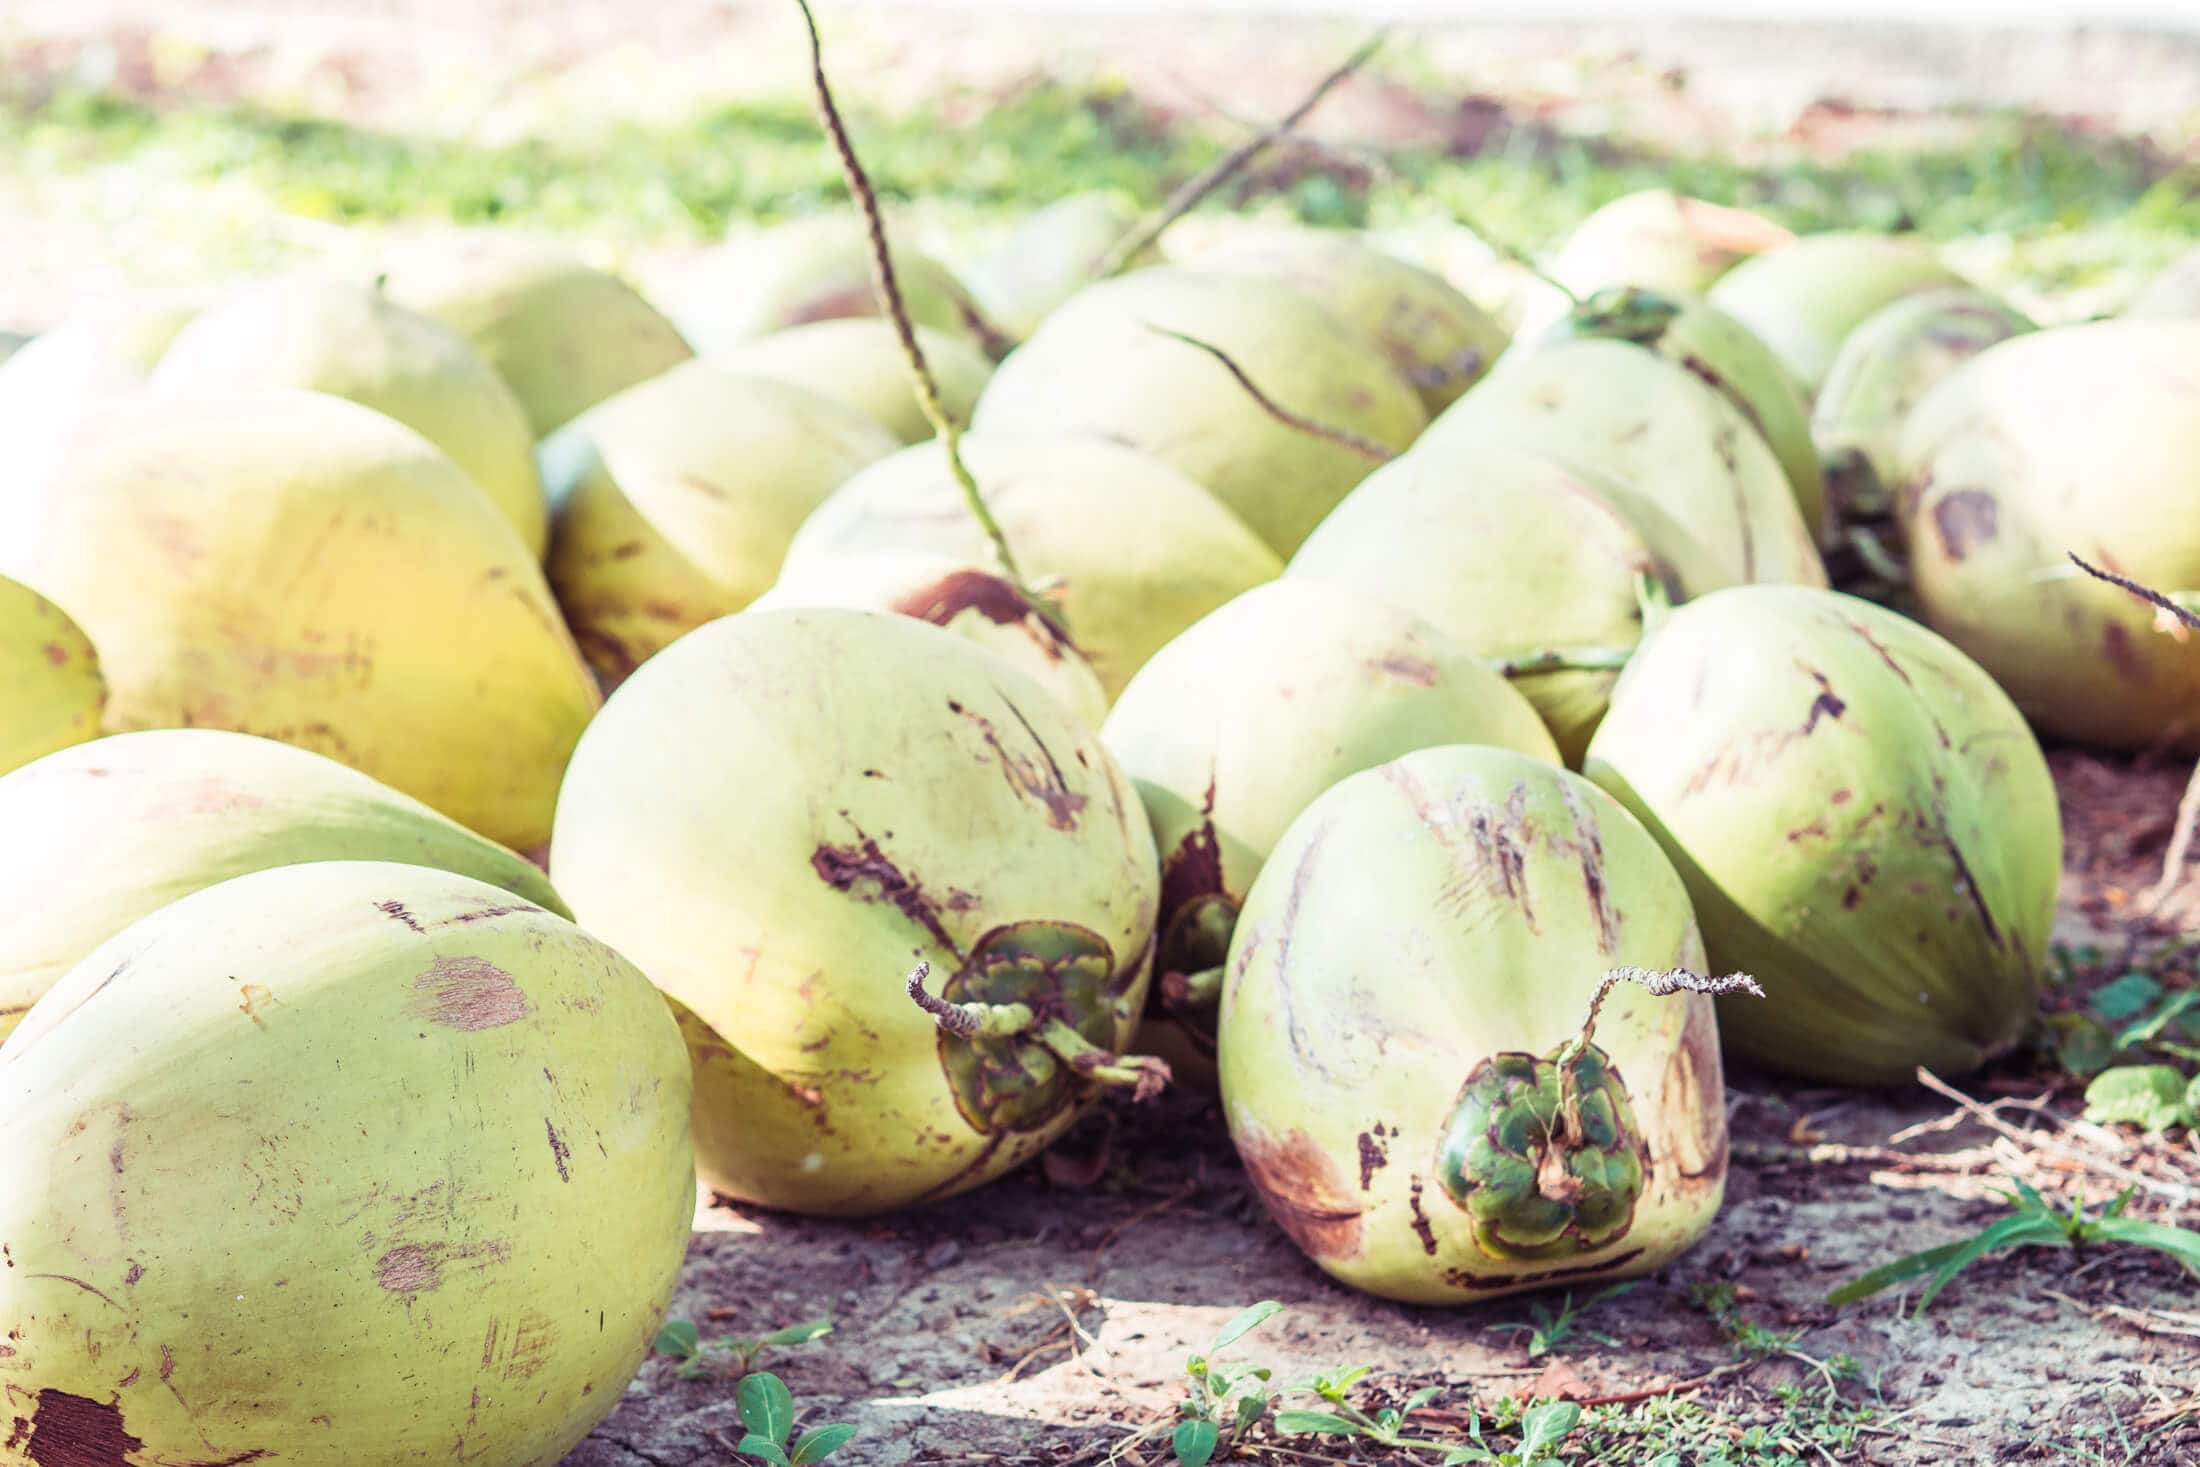 Coconuts at Whales & Waves Resort in Sumbawa, Indonesia - The most amazing place I've ever been